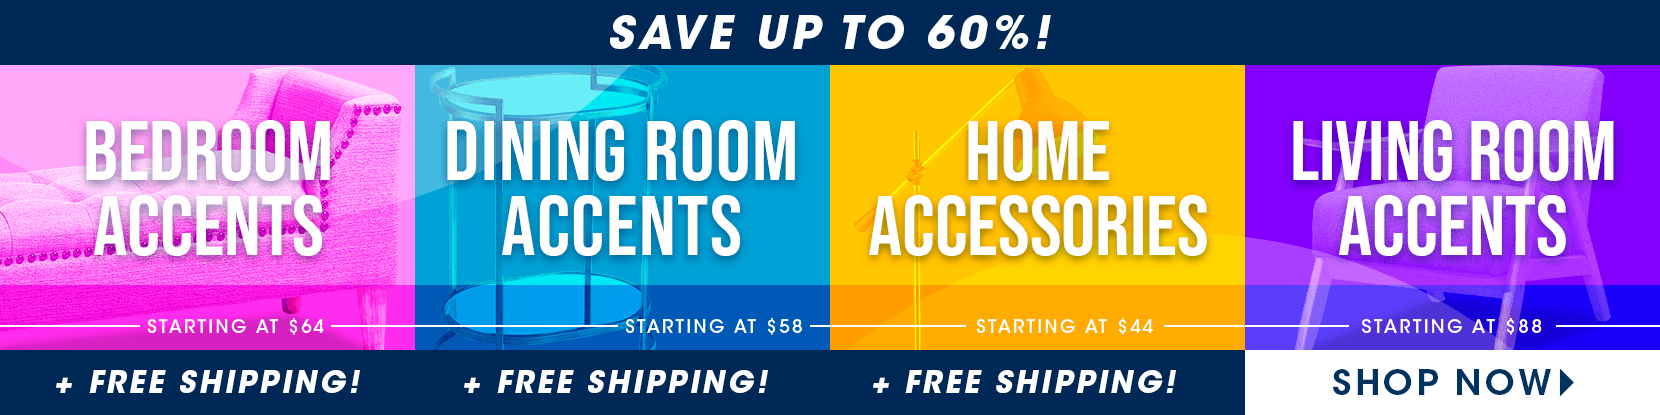 bedroom starting at $64. dining starting at $58. home decor starting at $44. living starting at $88. + free shipping. shop now